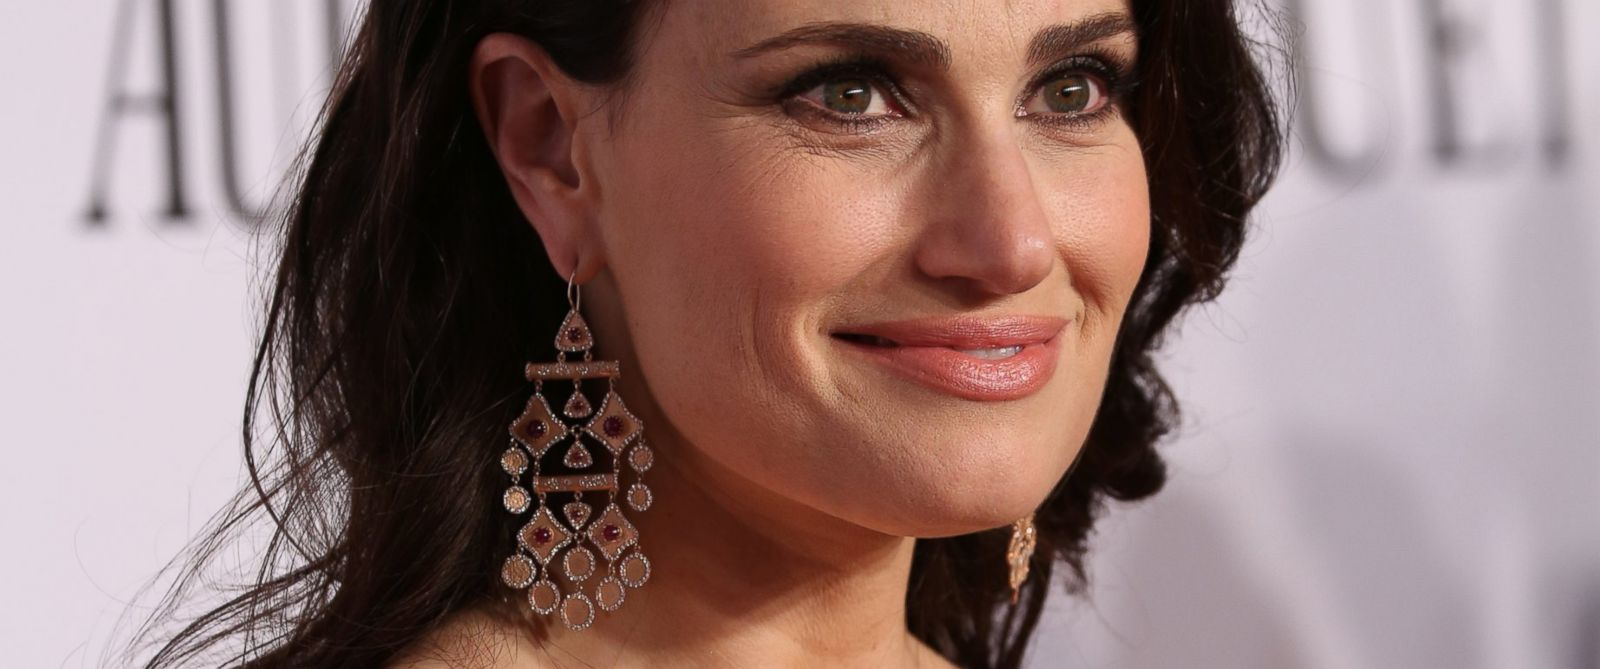 PHOTO: Idina Menzel attends the 68th Annual Tony Awards at Radio City Music Hall on June 8, 2014 in New York City.